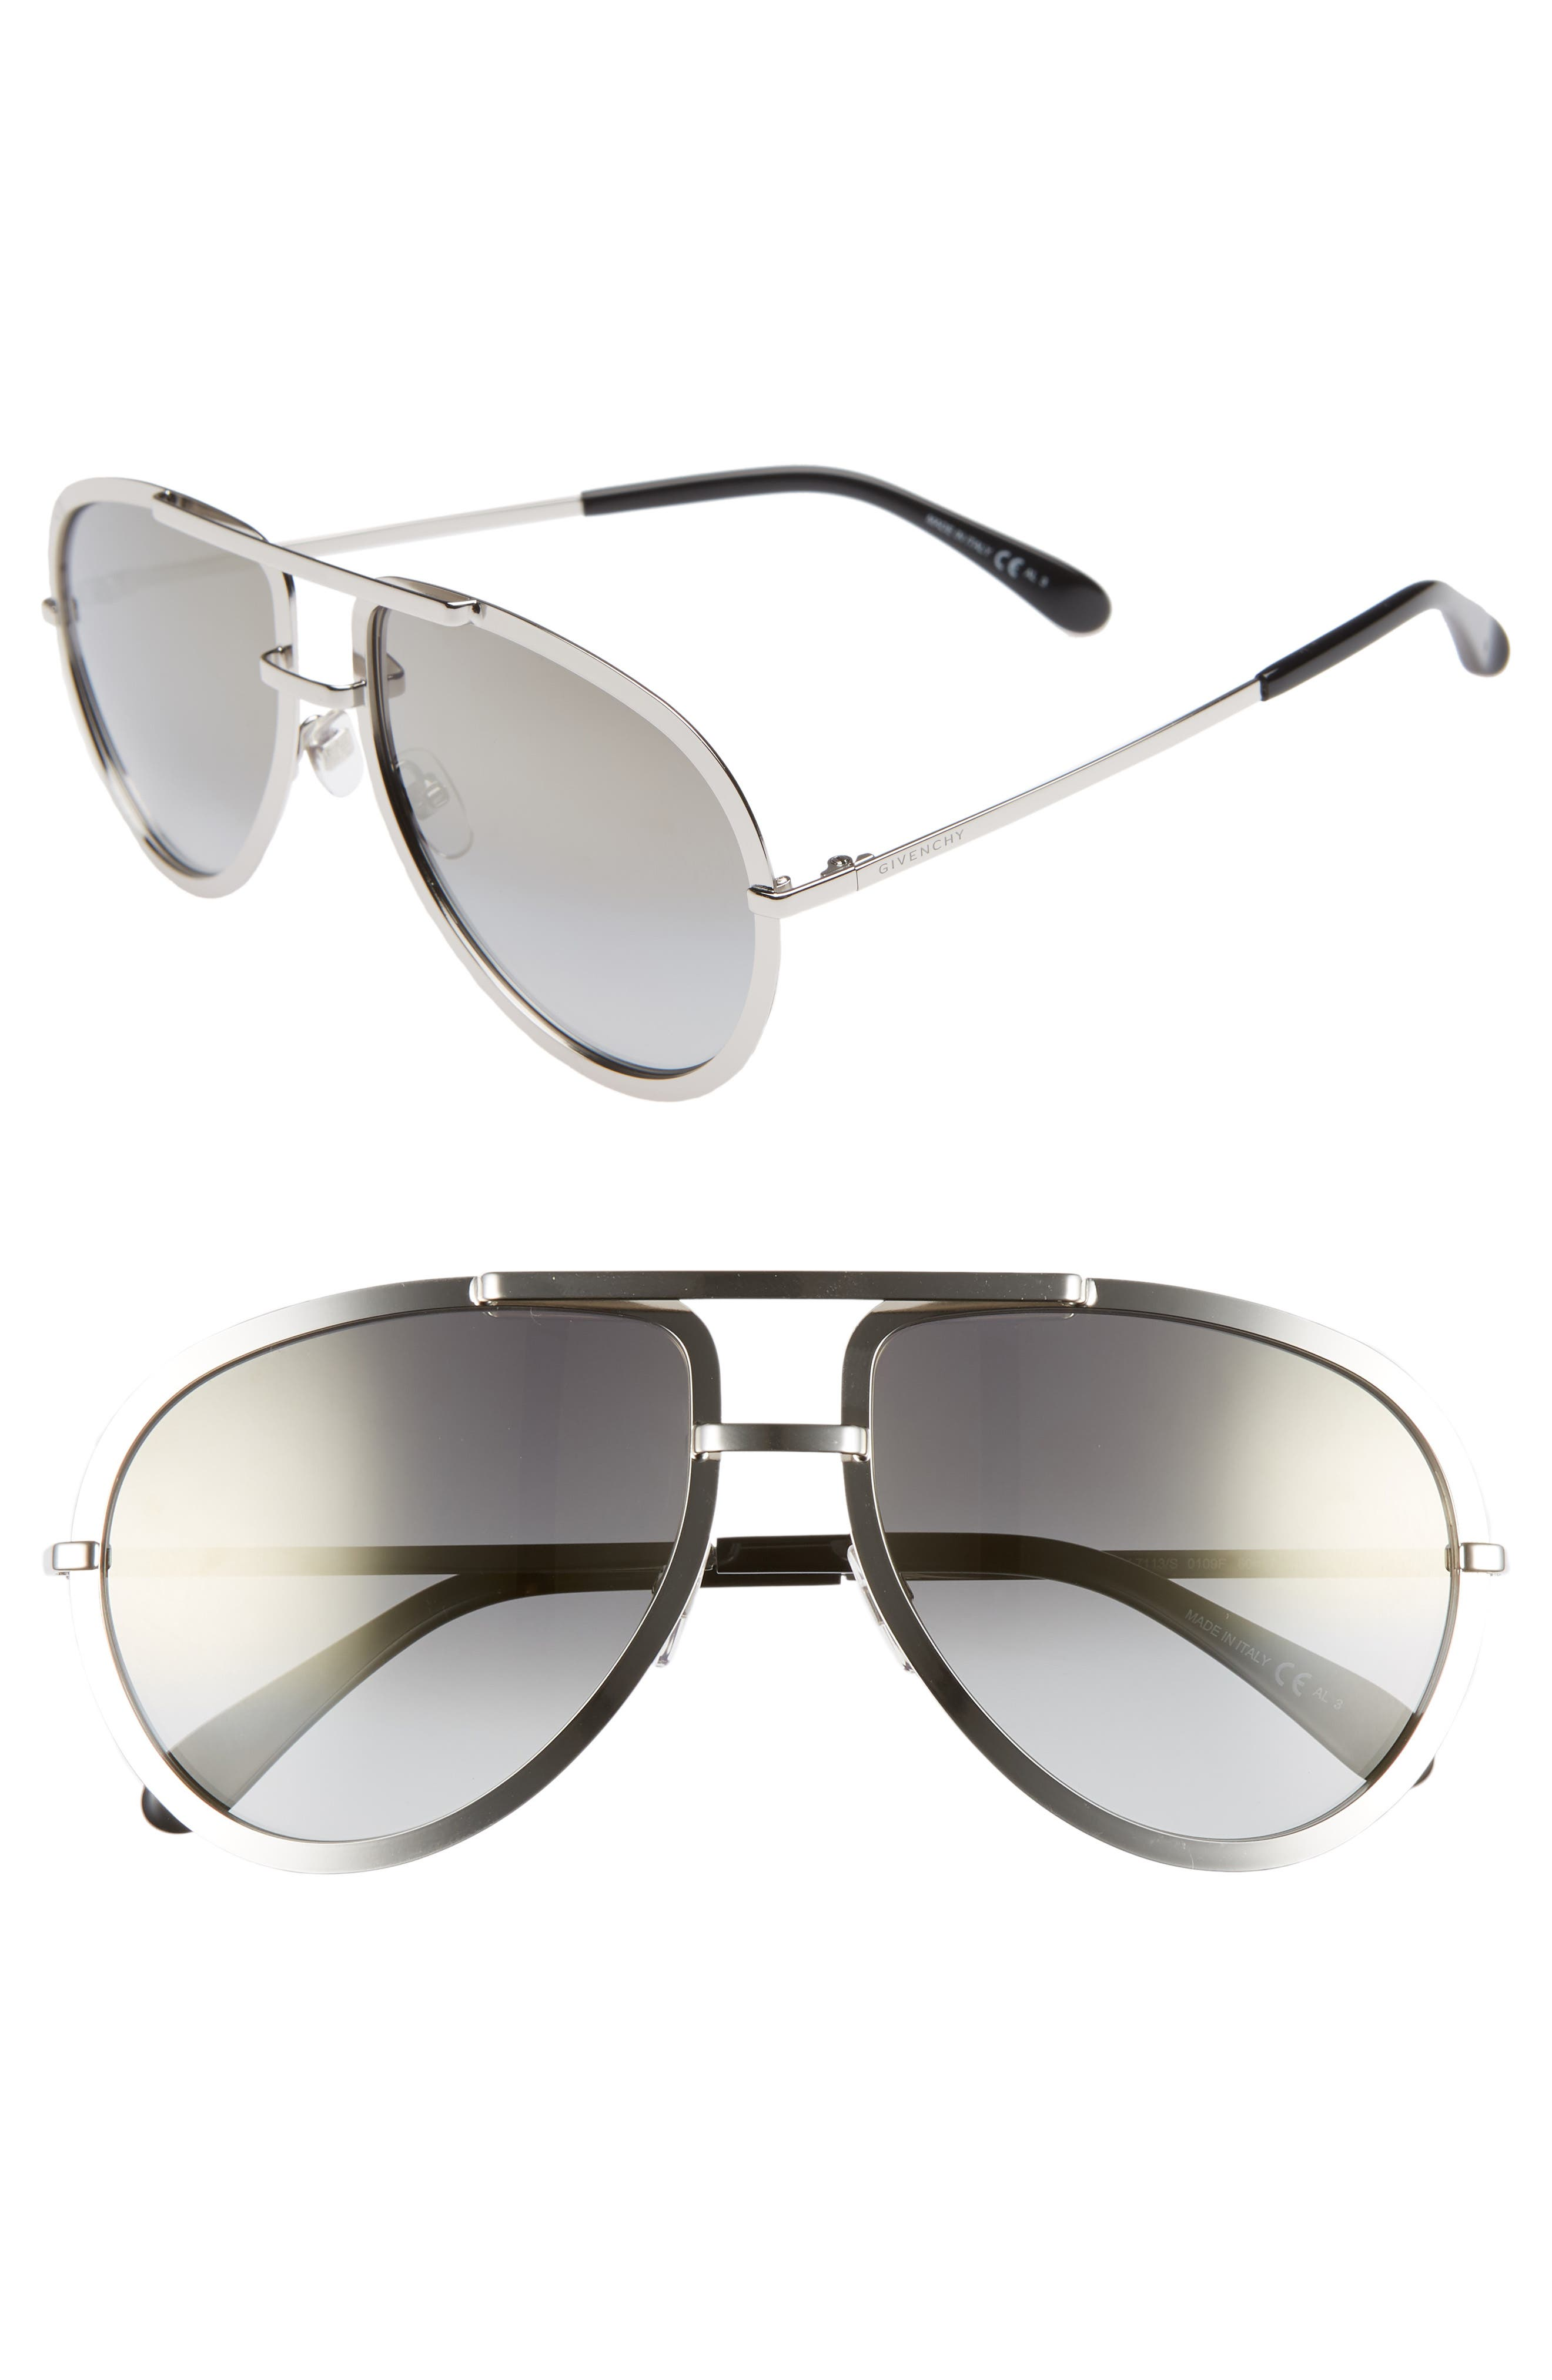 Givenchy 60Mm Aviator Sunglasses - Palladium